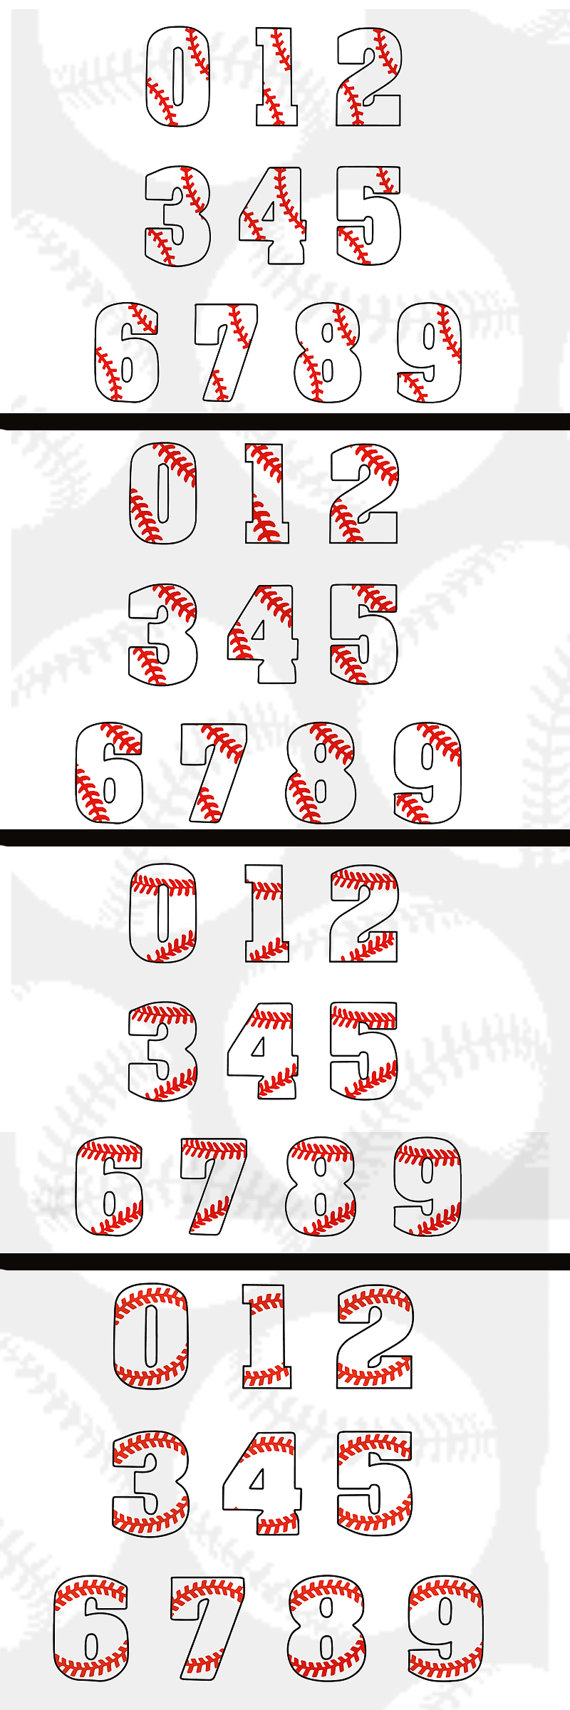 Download 4 pack Baseball laces numbers svg-dxf-png-eps in 1 zip by ...